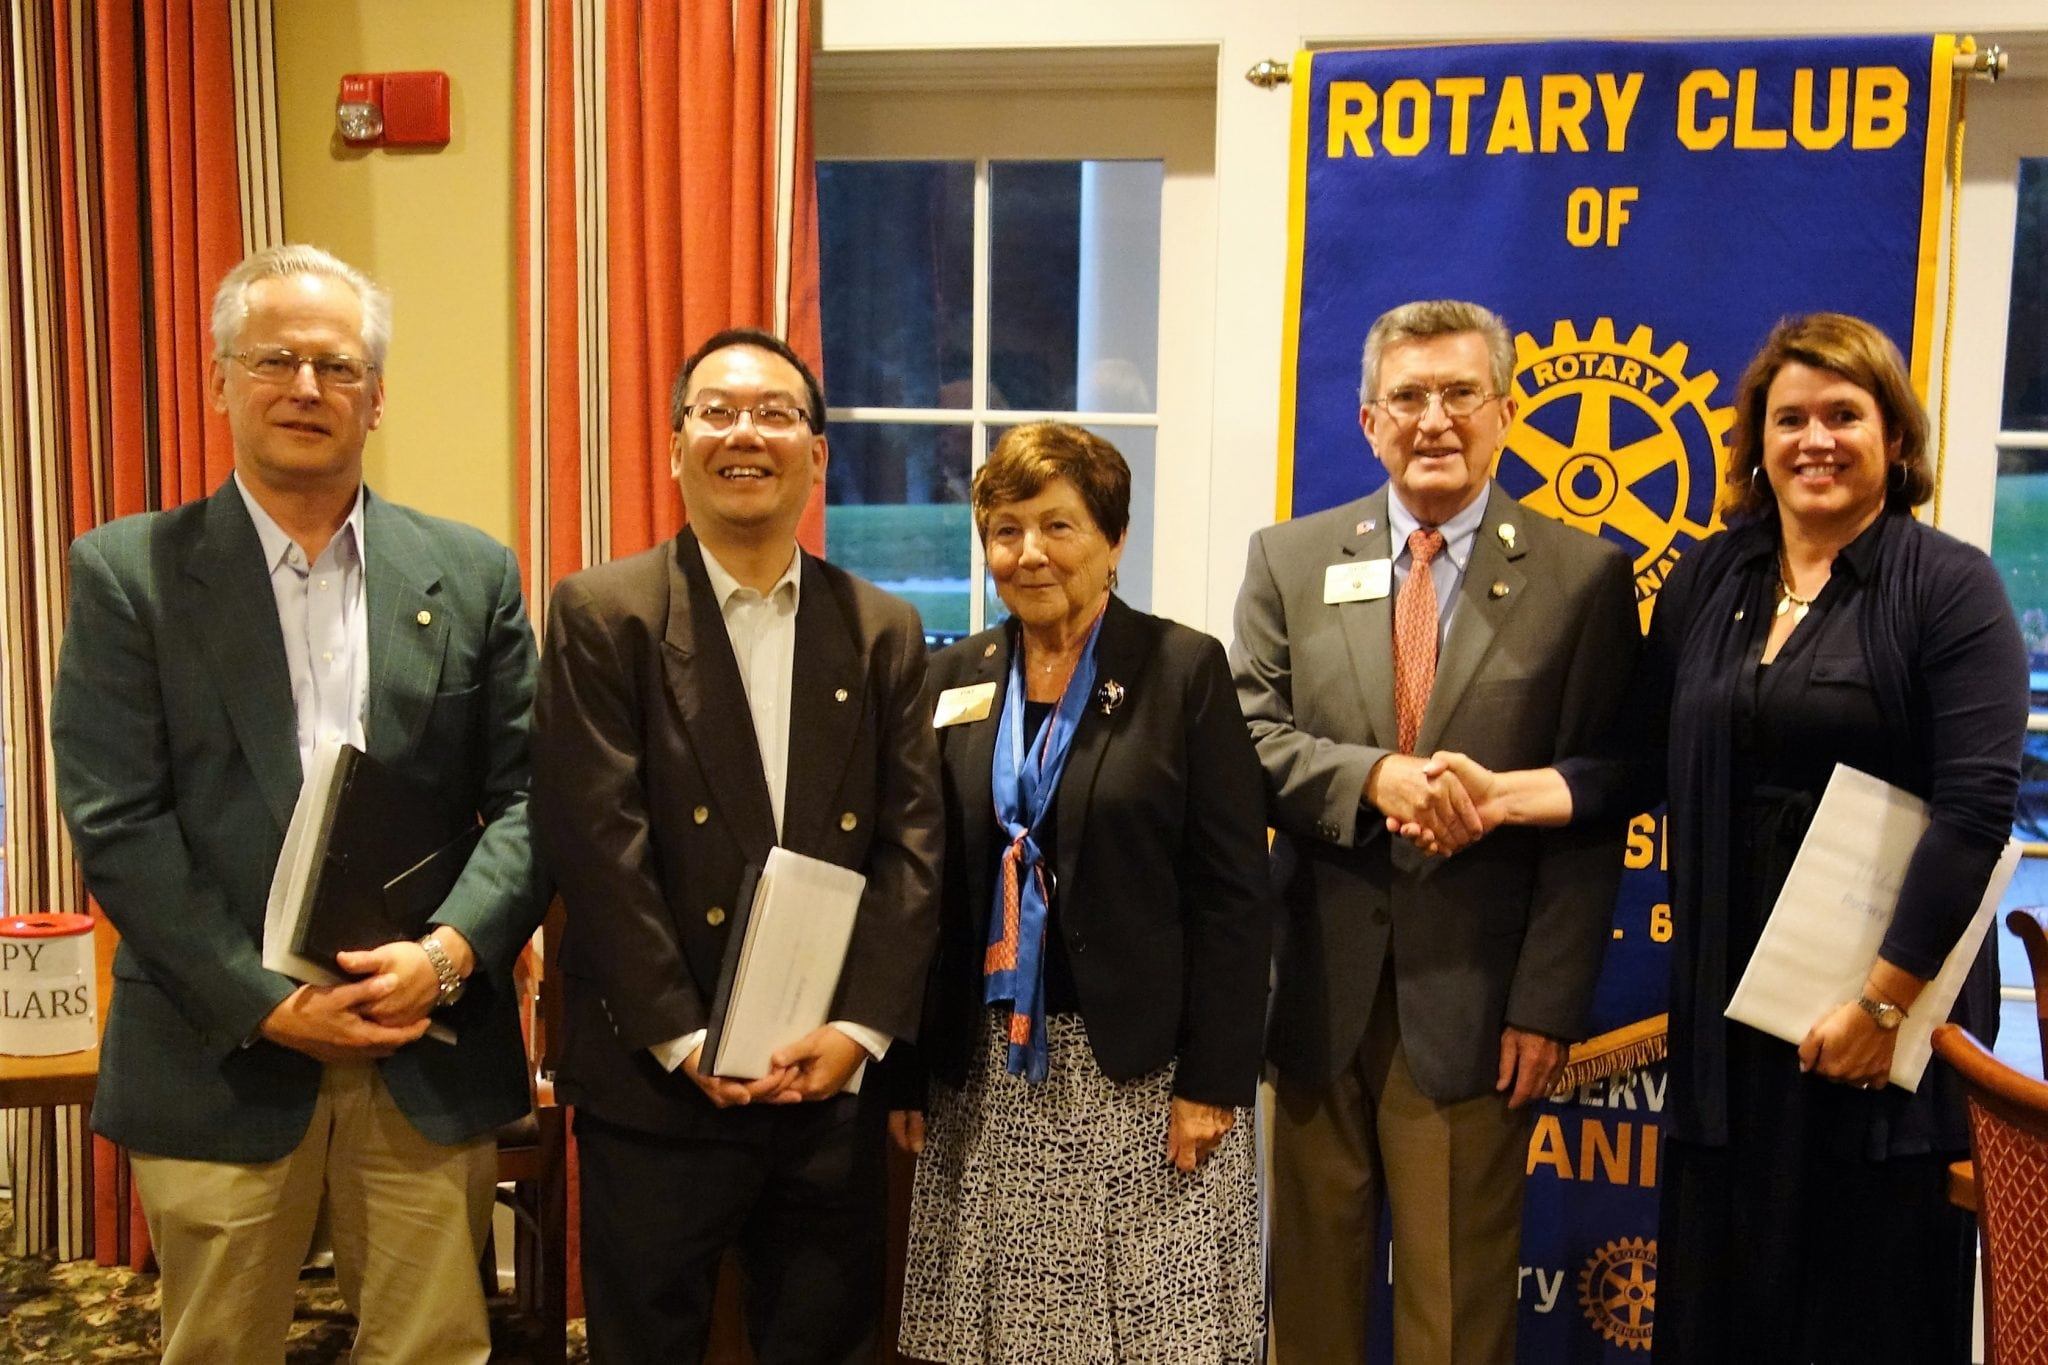 Wellesley Rotary Club